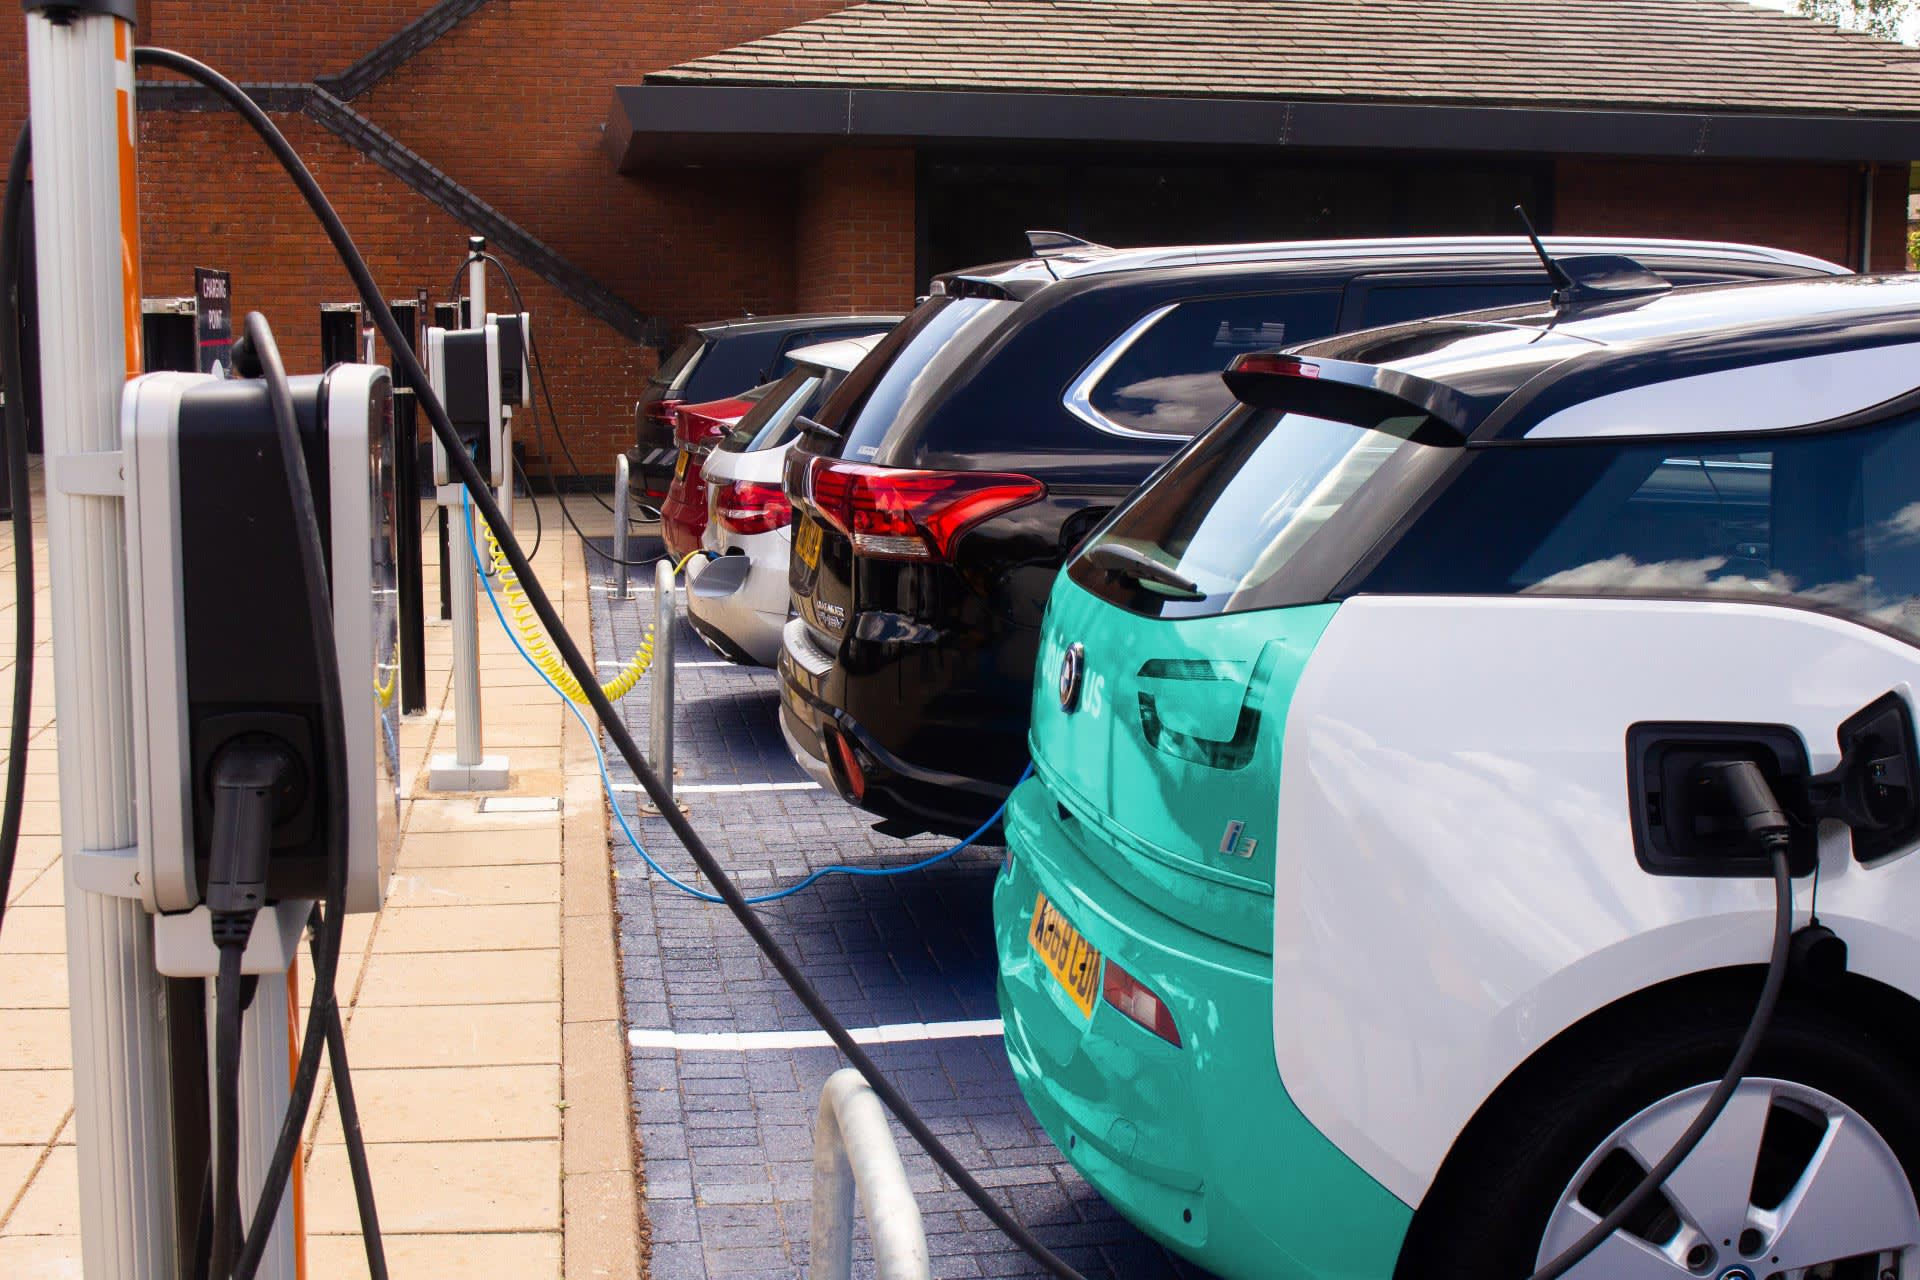 We used electric vehicles to save 11.5 tonnes of CO2 emissions